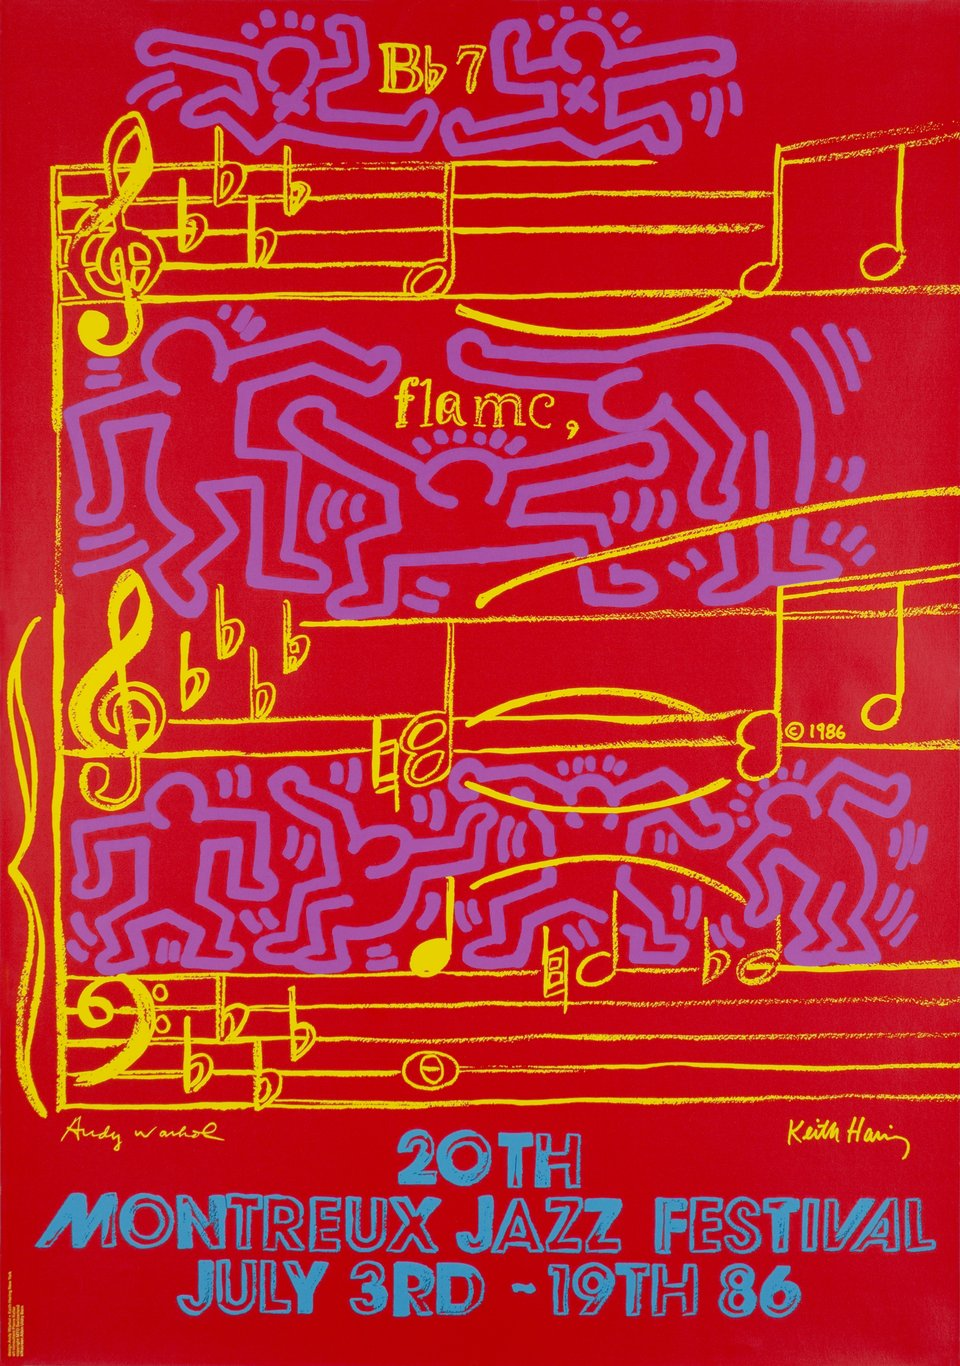 20ème Montreux Jazz Festival 1986 – Vintage poster – Keith HARING, Andy WARHOL – 1986